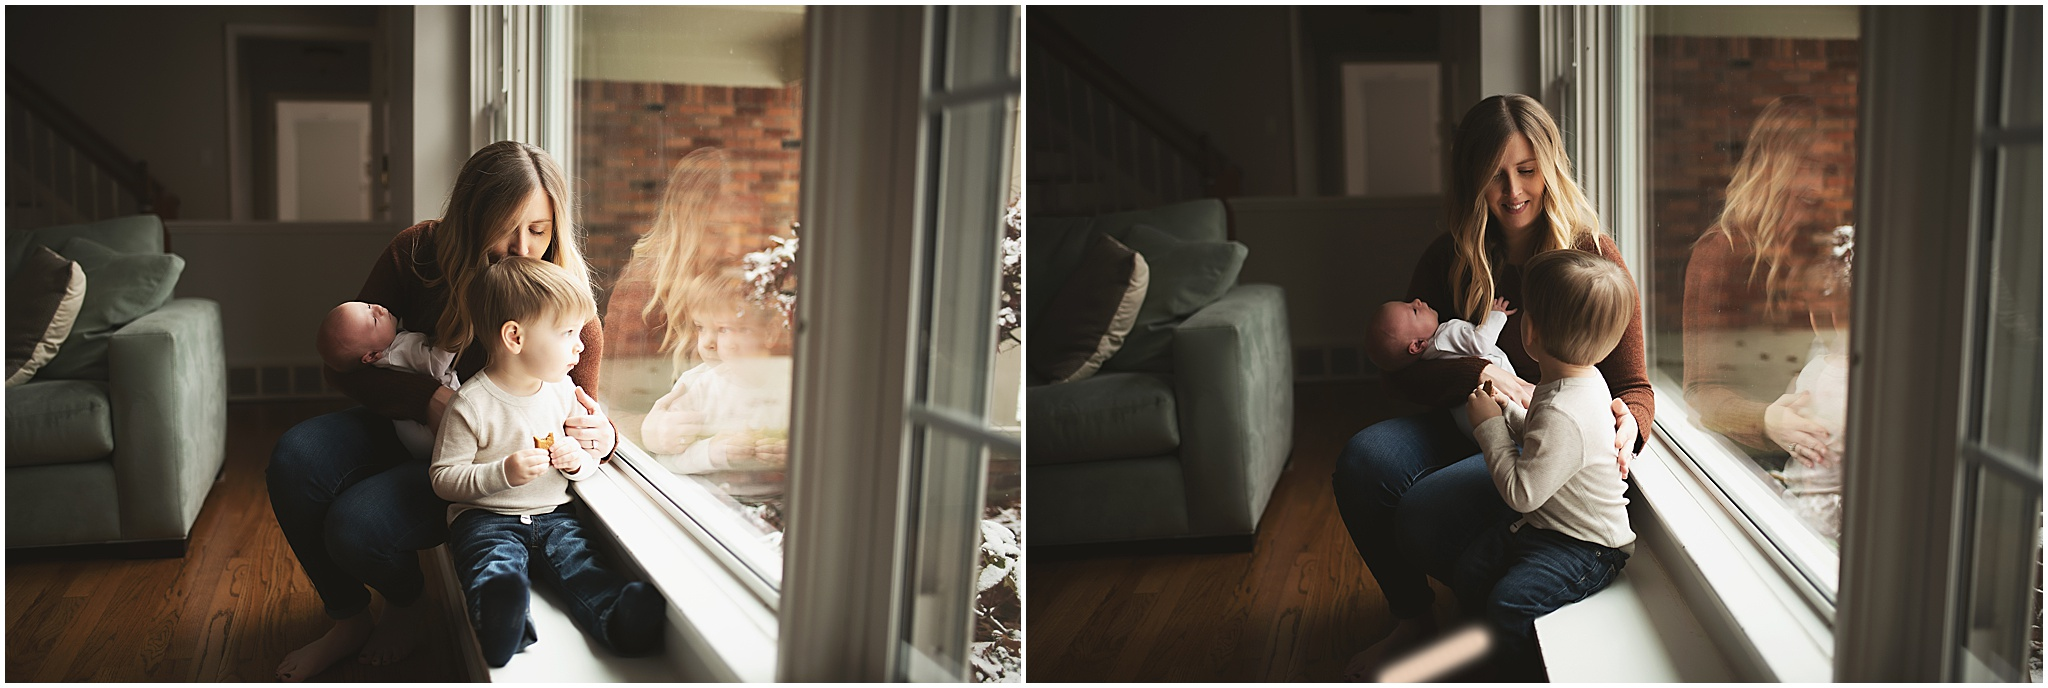 karra lynn photography - newborn photographer northville mi - mom by window